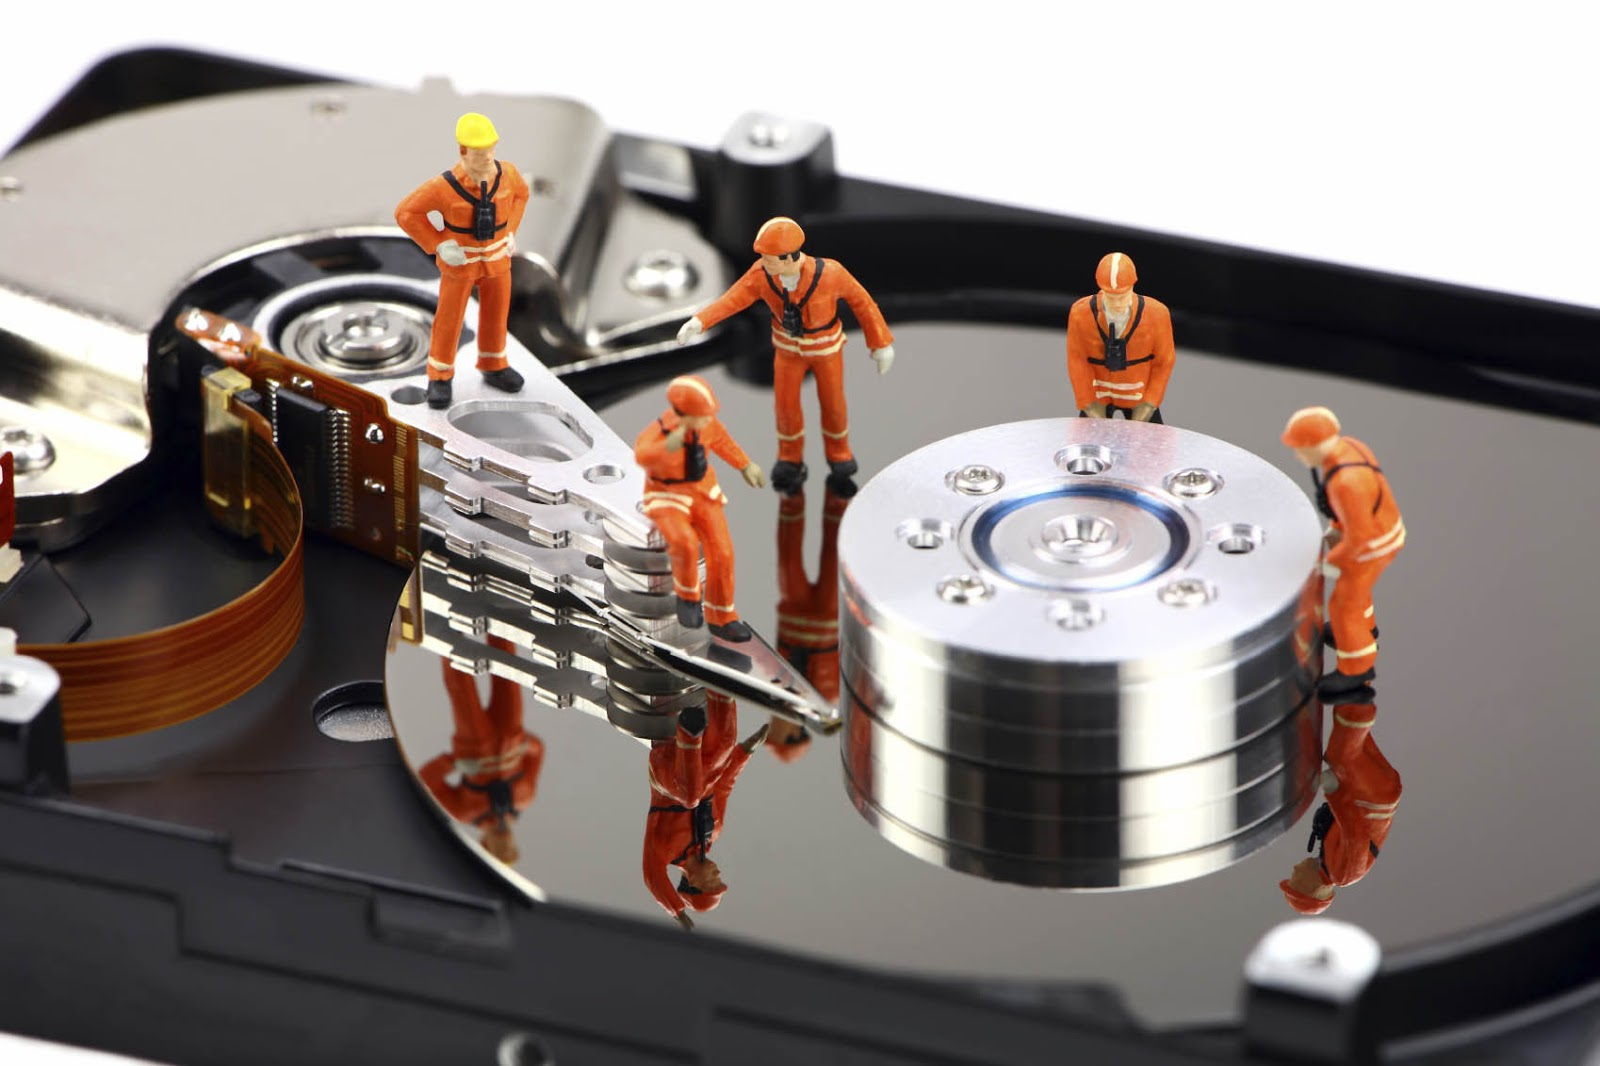 Recover Overwritten Files – Is it Safe?